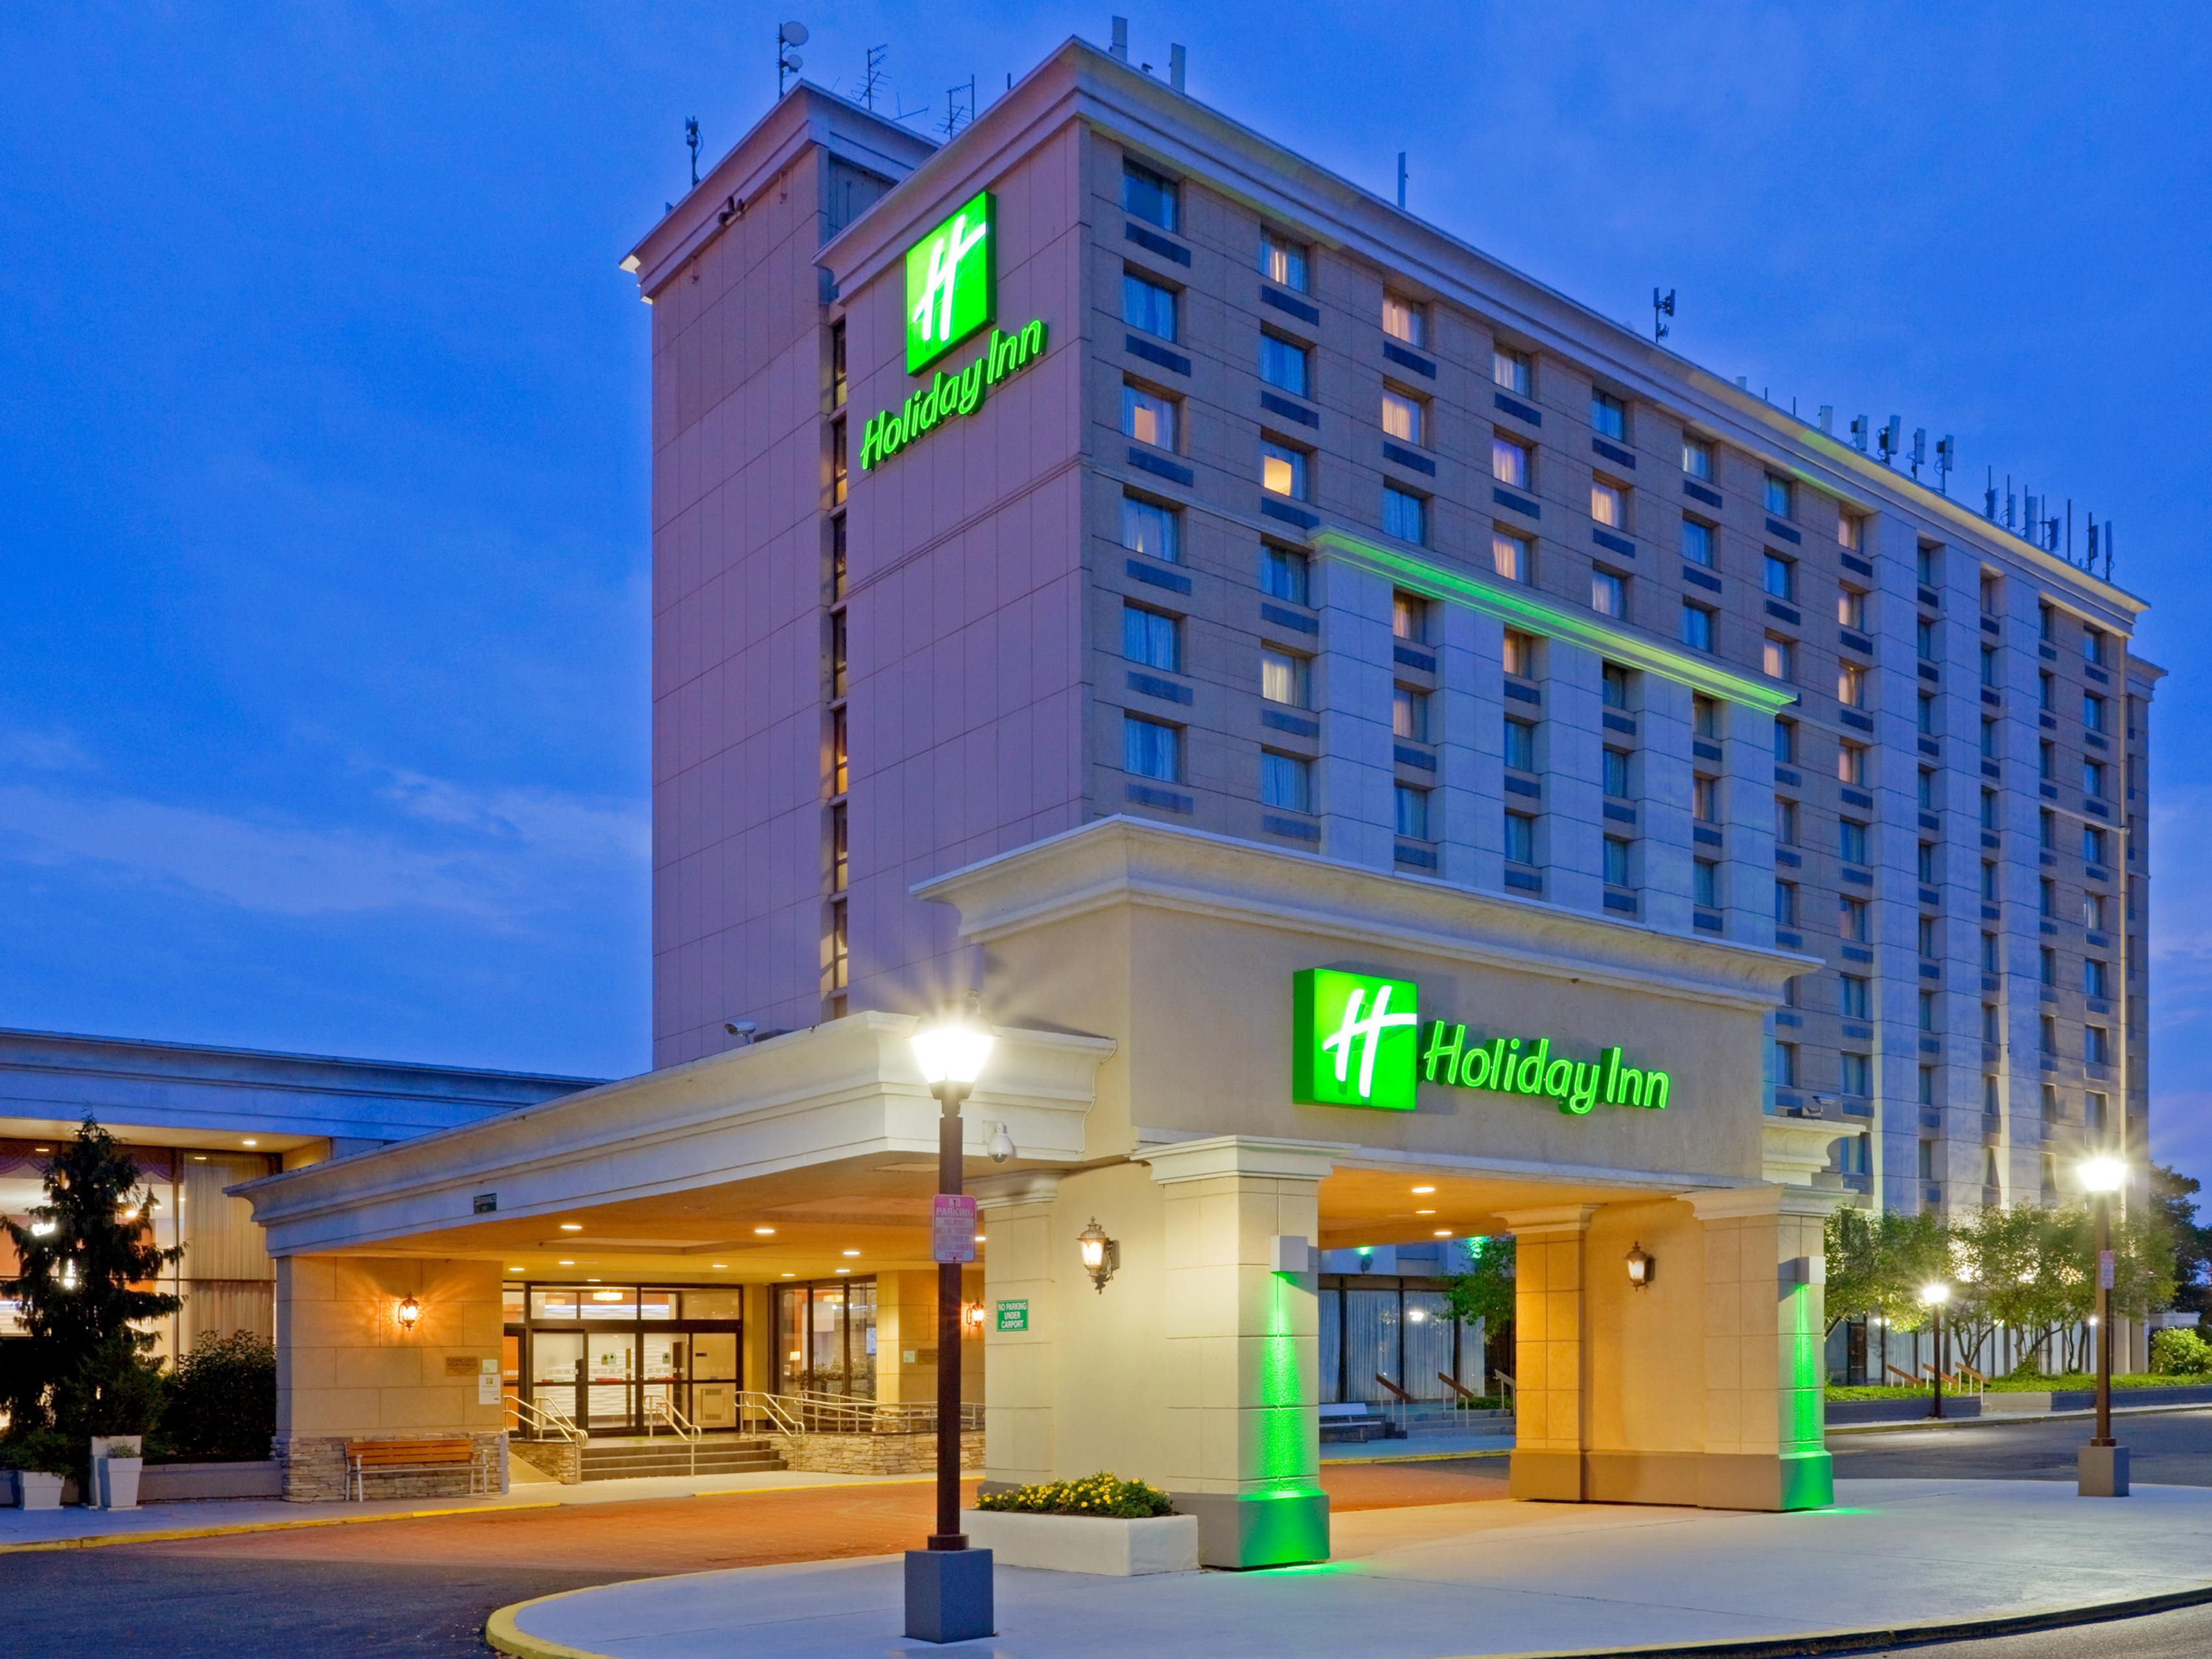 Hotel Exterior at Night at the Holiday Inn Philadelphia Stadium